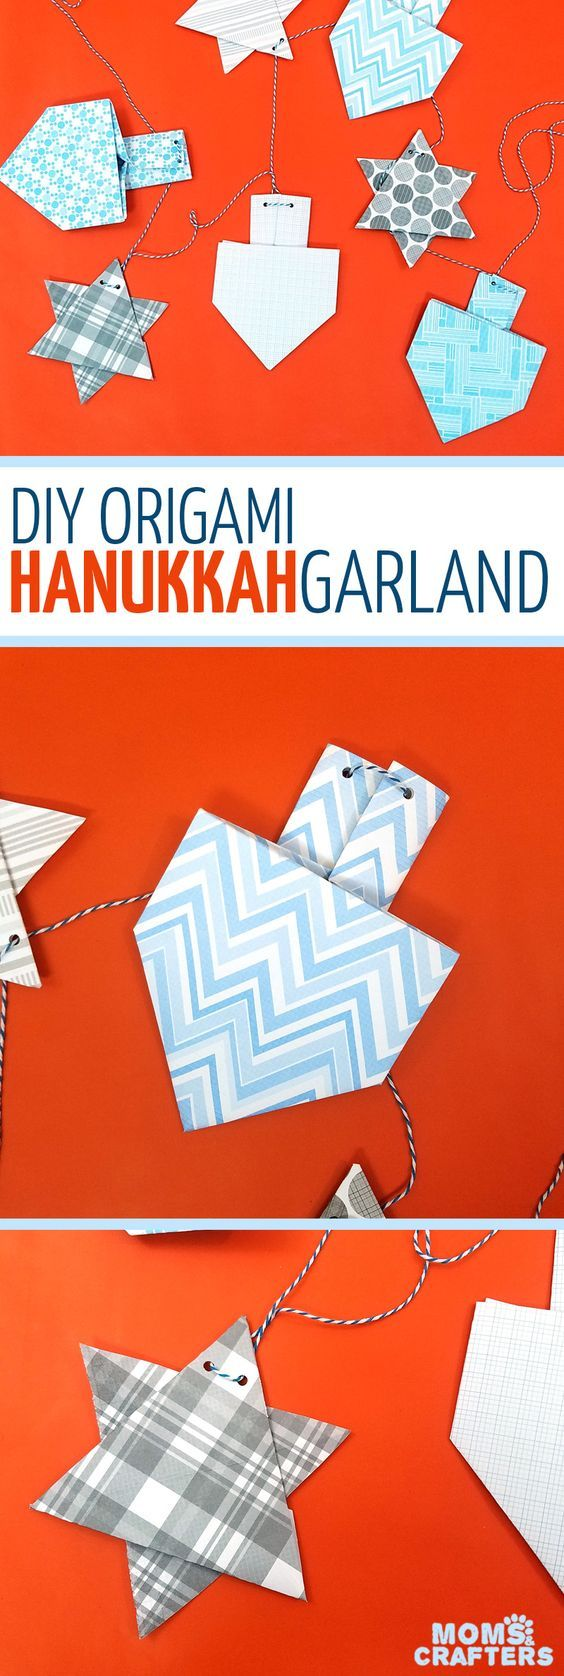 289 Best Jewish Holiday Hanukkah Images By Margot Jackler On